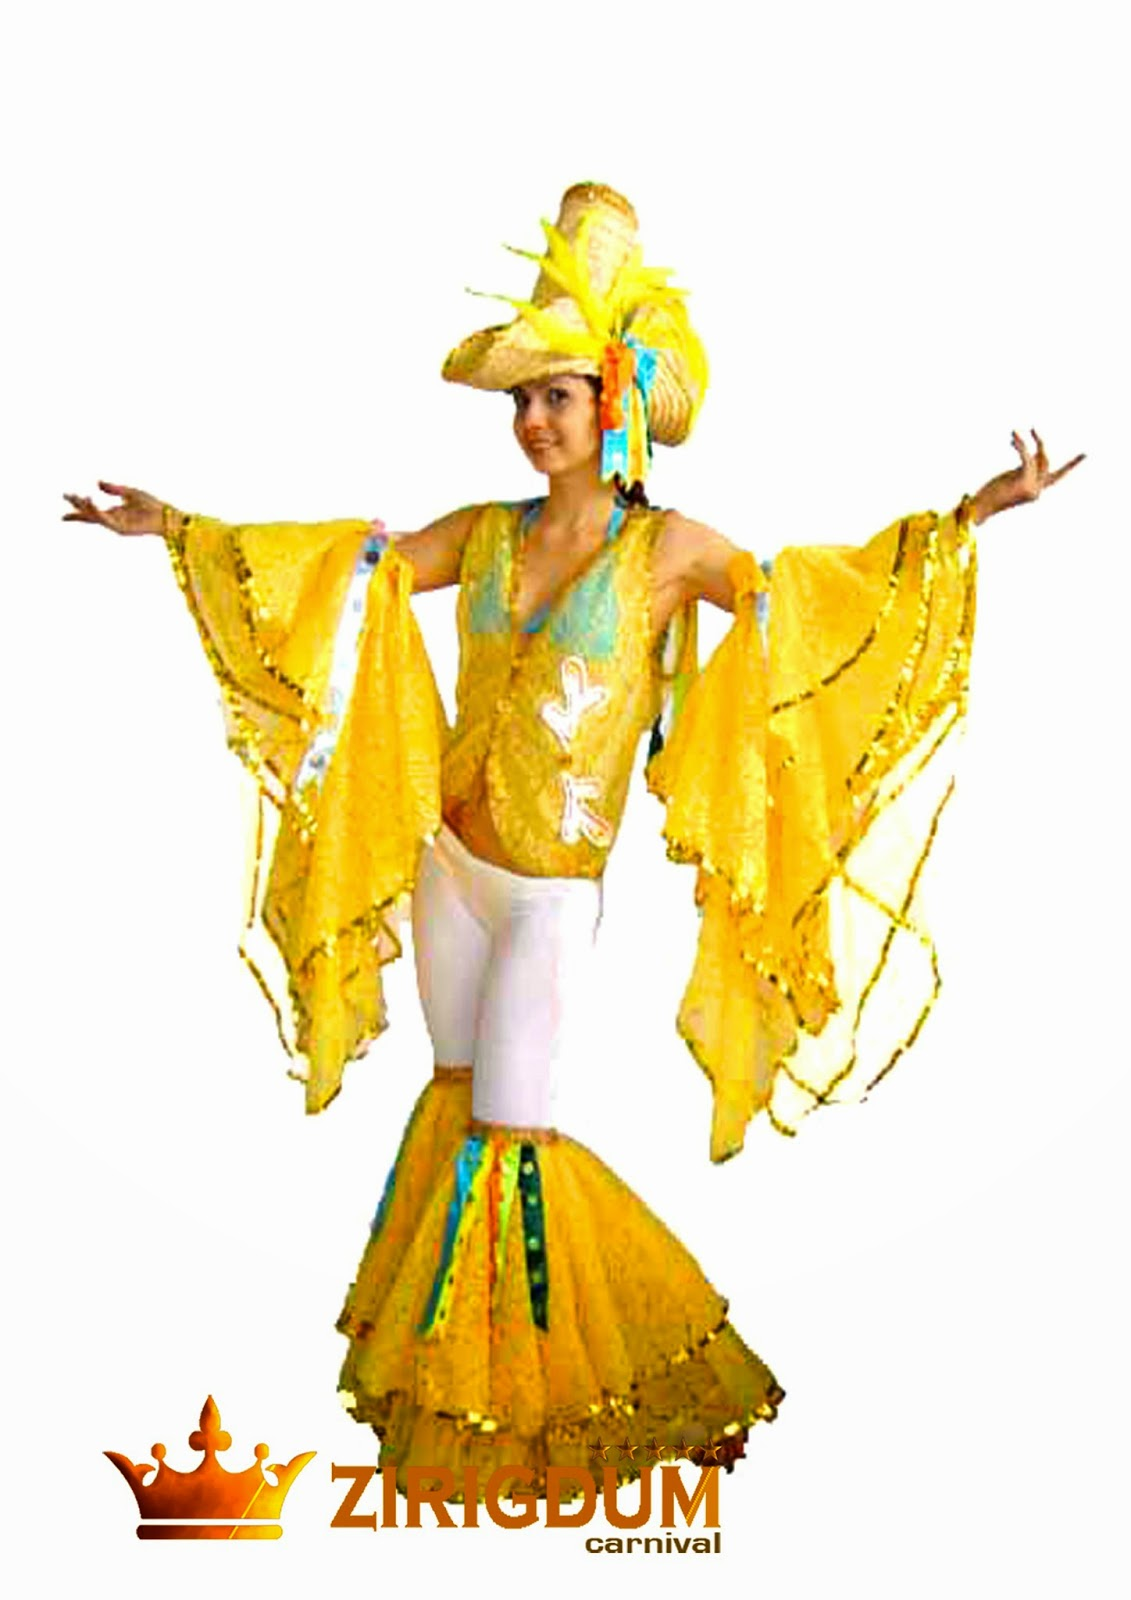 burlesque dress costumes kids costumes feather costumes circus party costumes dress costume feather carnivale costume feather headpieces brazilian ...  sc 1 st  Zirigdum Carnival Costumes & burlesque dress costumes kids costumes feather costumes circus ...